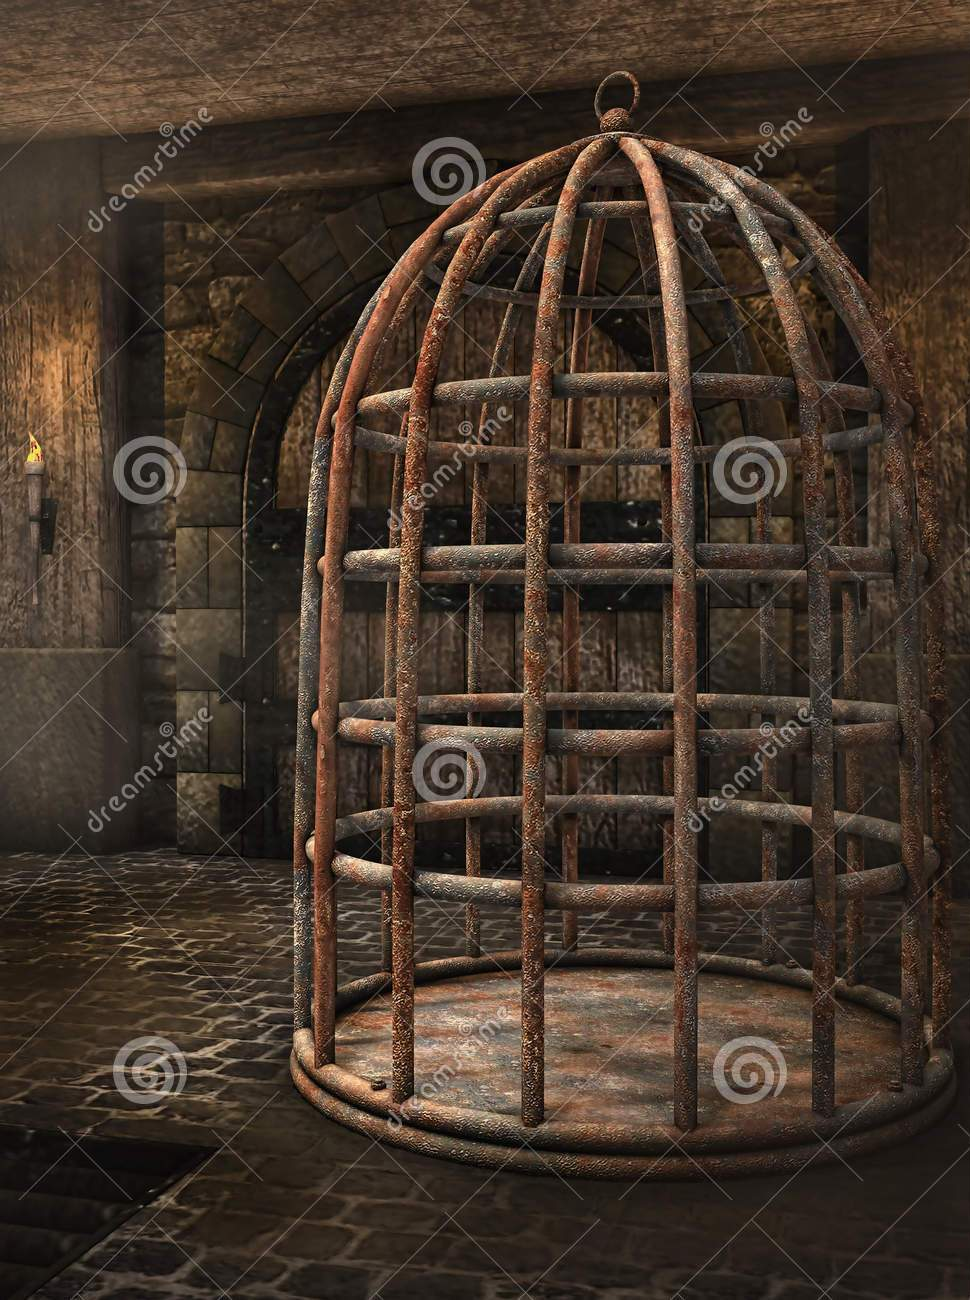 cage-dungeon-old-rusty-39353860.jpg